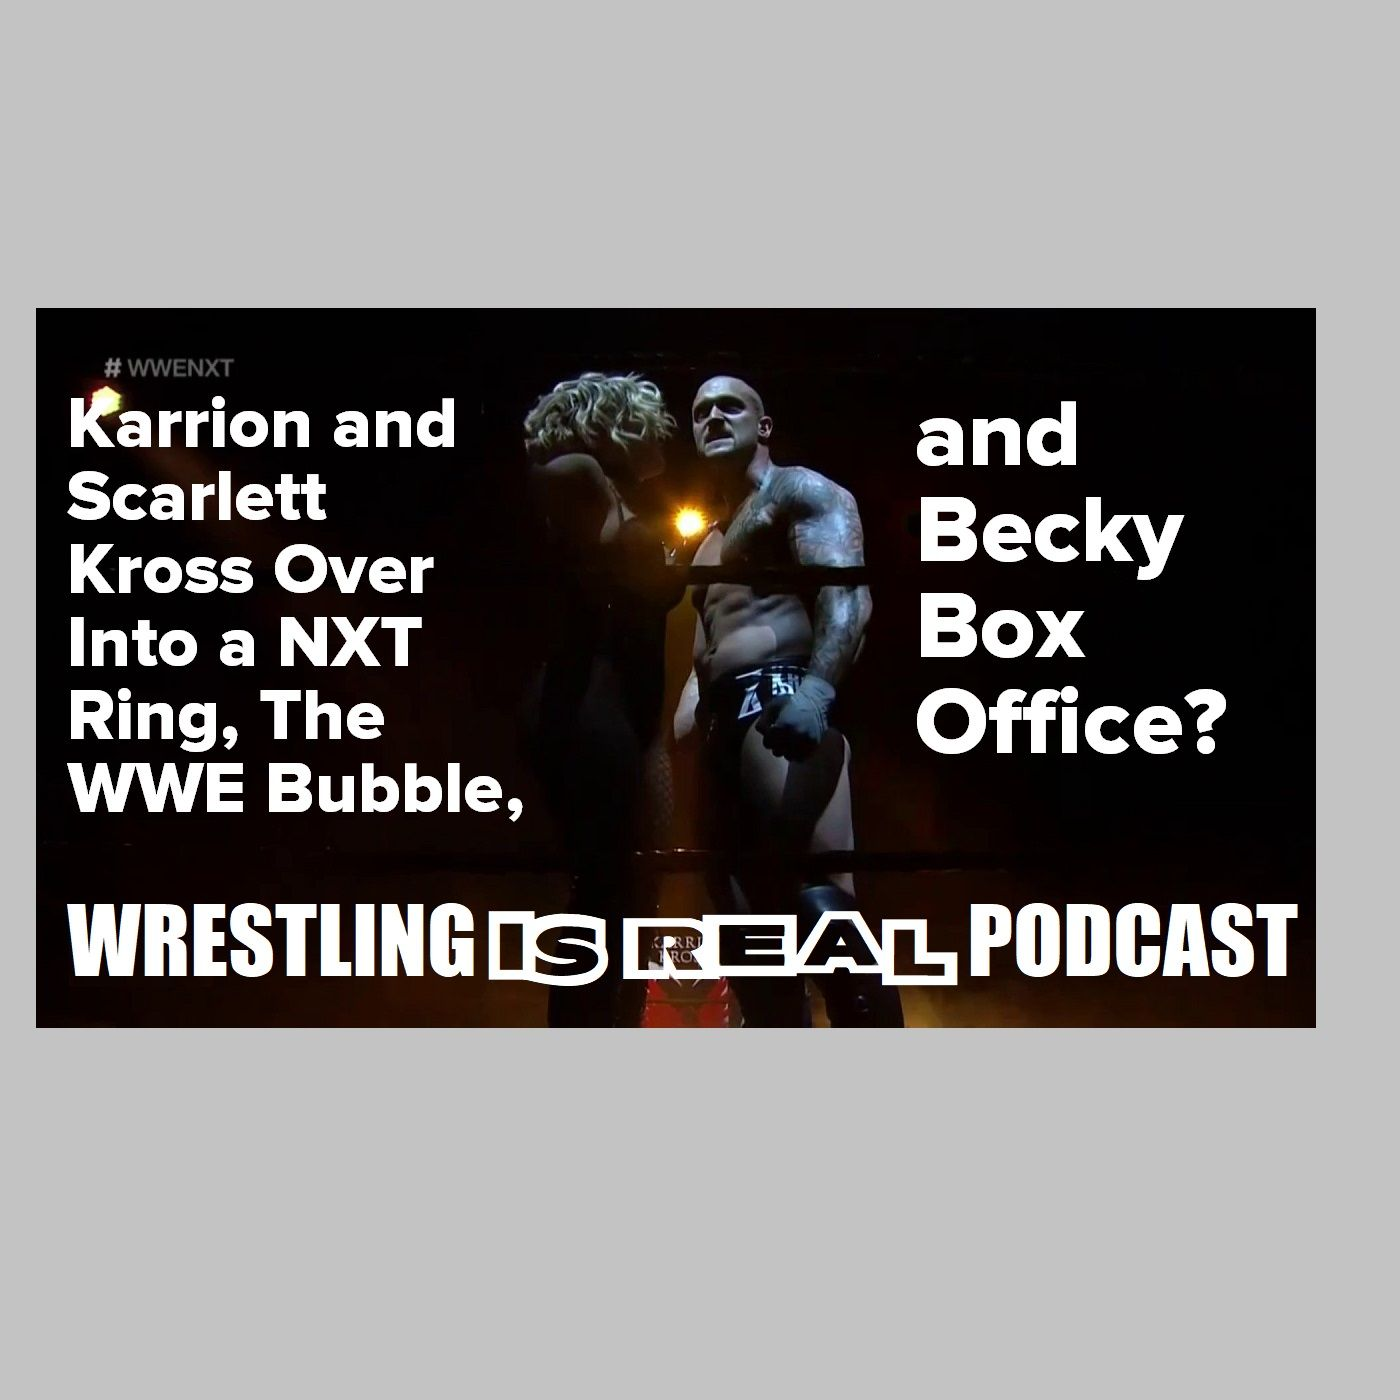 Karrion and Scarlett Kross Over Into a NXT Ring, The WWE Bubble, and Becky Box Office? KOP050720-531